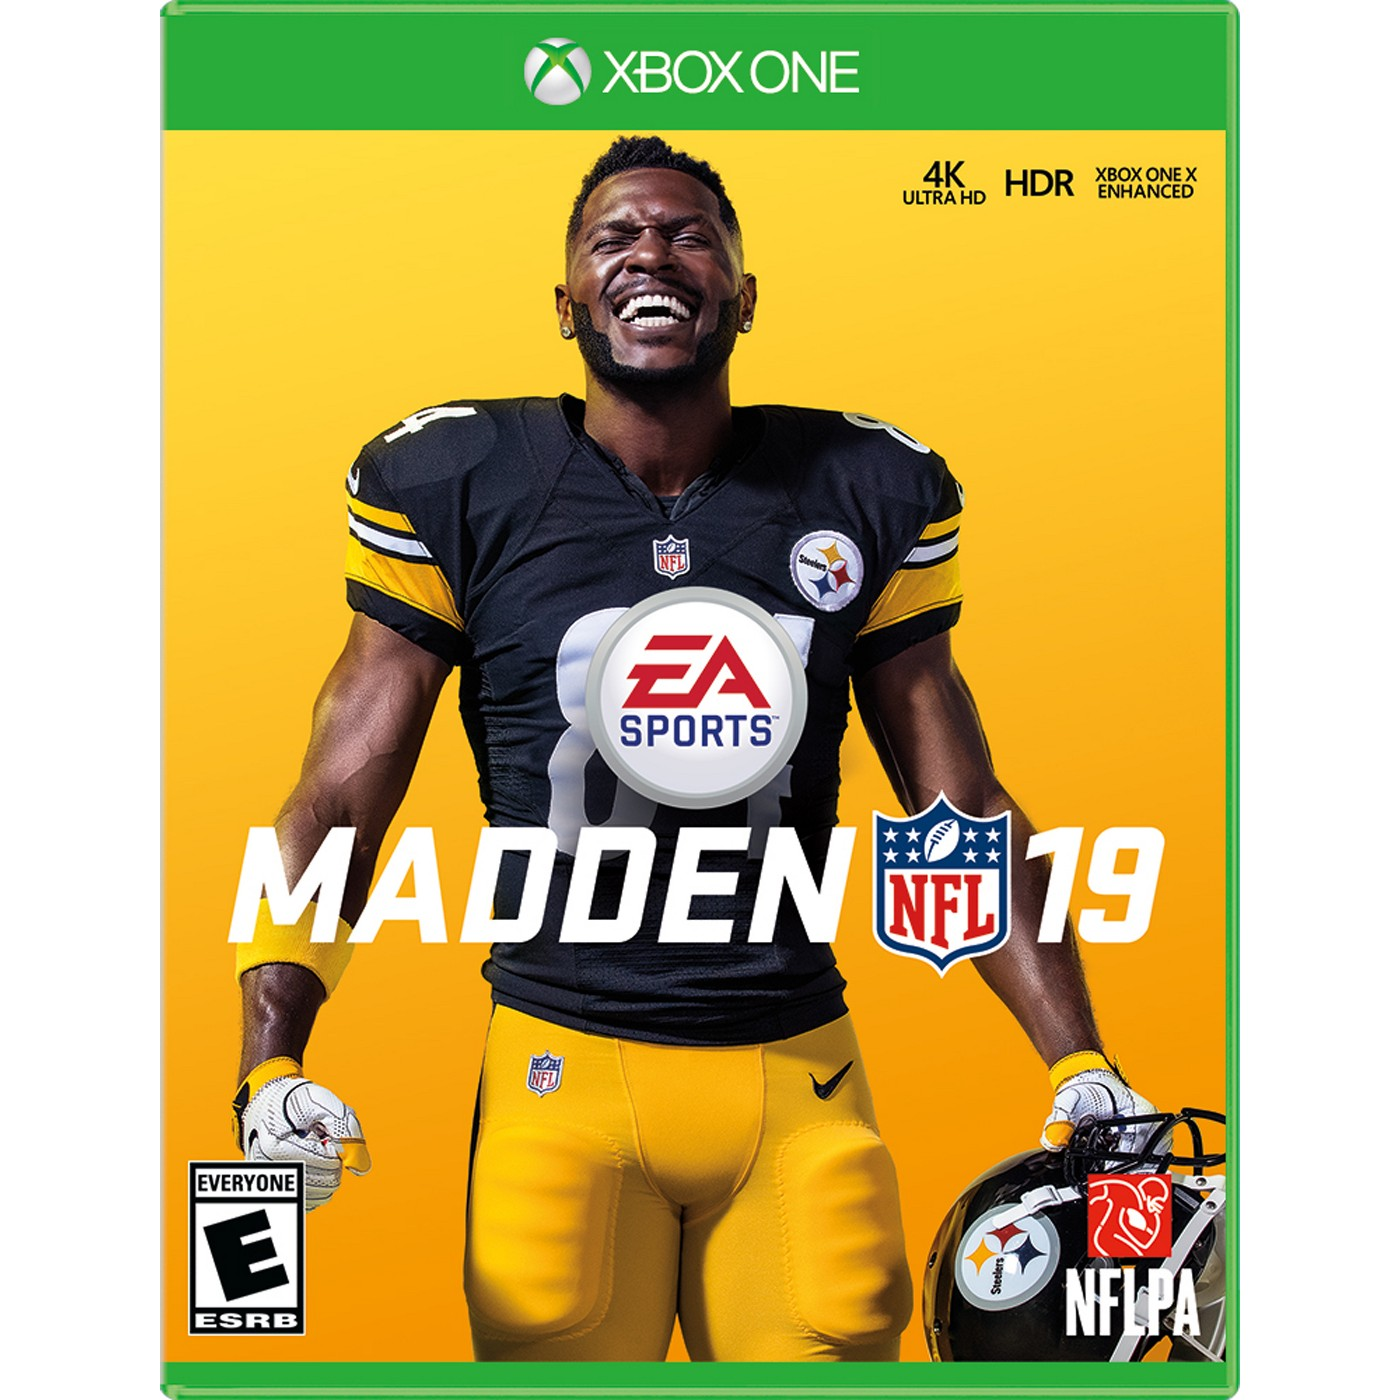 Get $50 gift with 2 Madden NFL 19 - Xbox One game